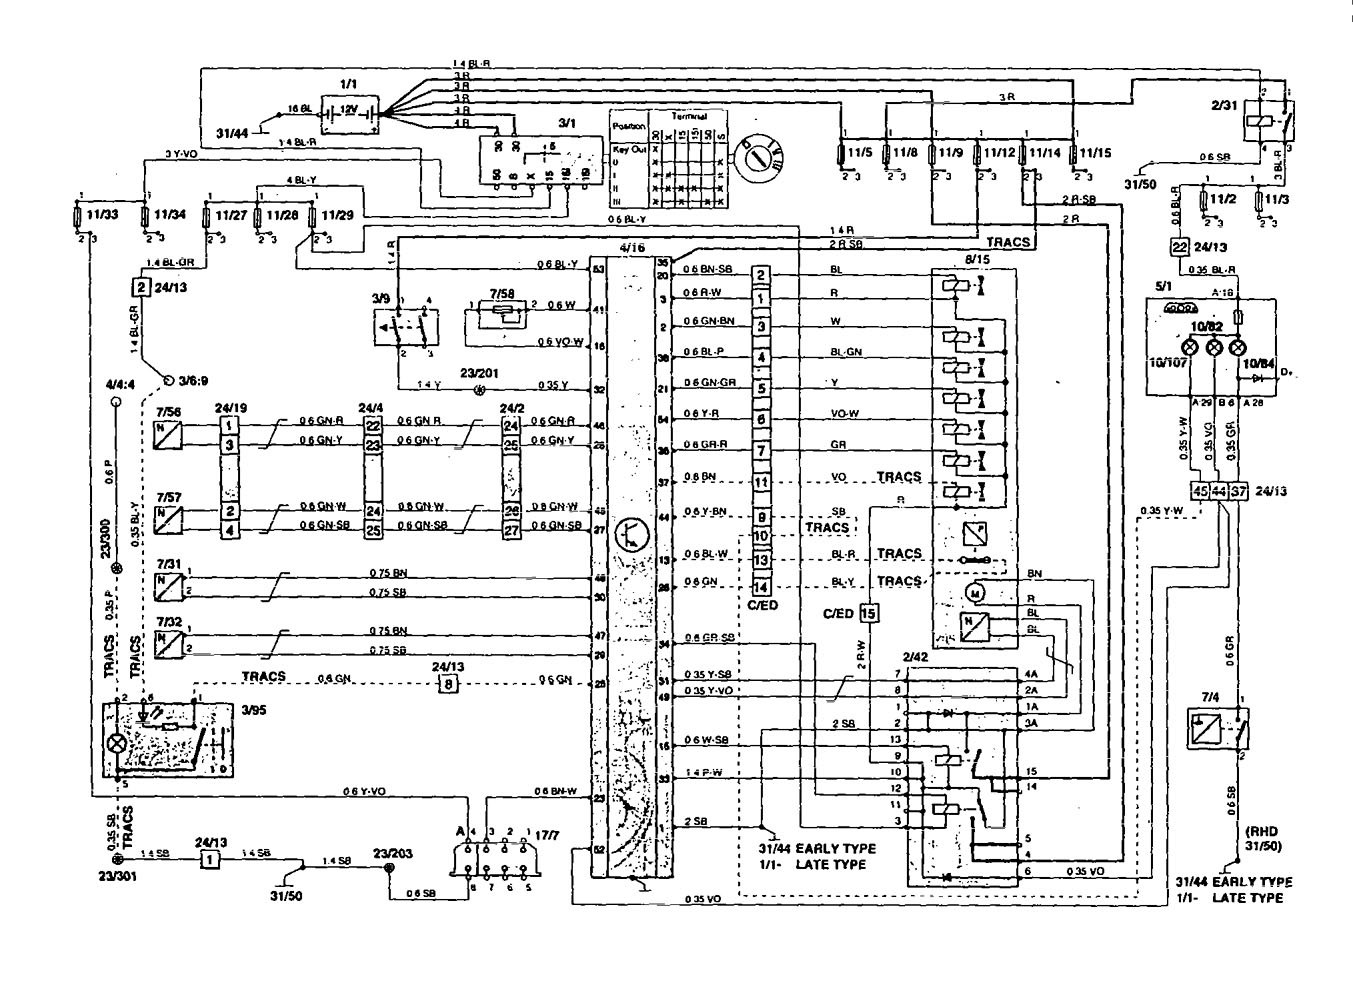 Volvo 850 Car Stereo Wiring Diagram : Volvo  wiring diagrams traction controls